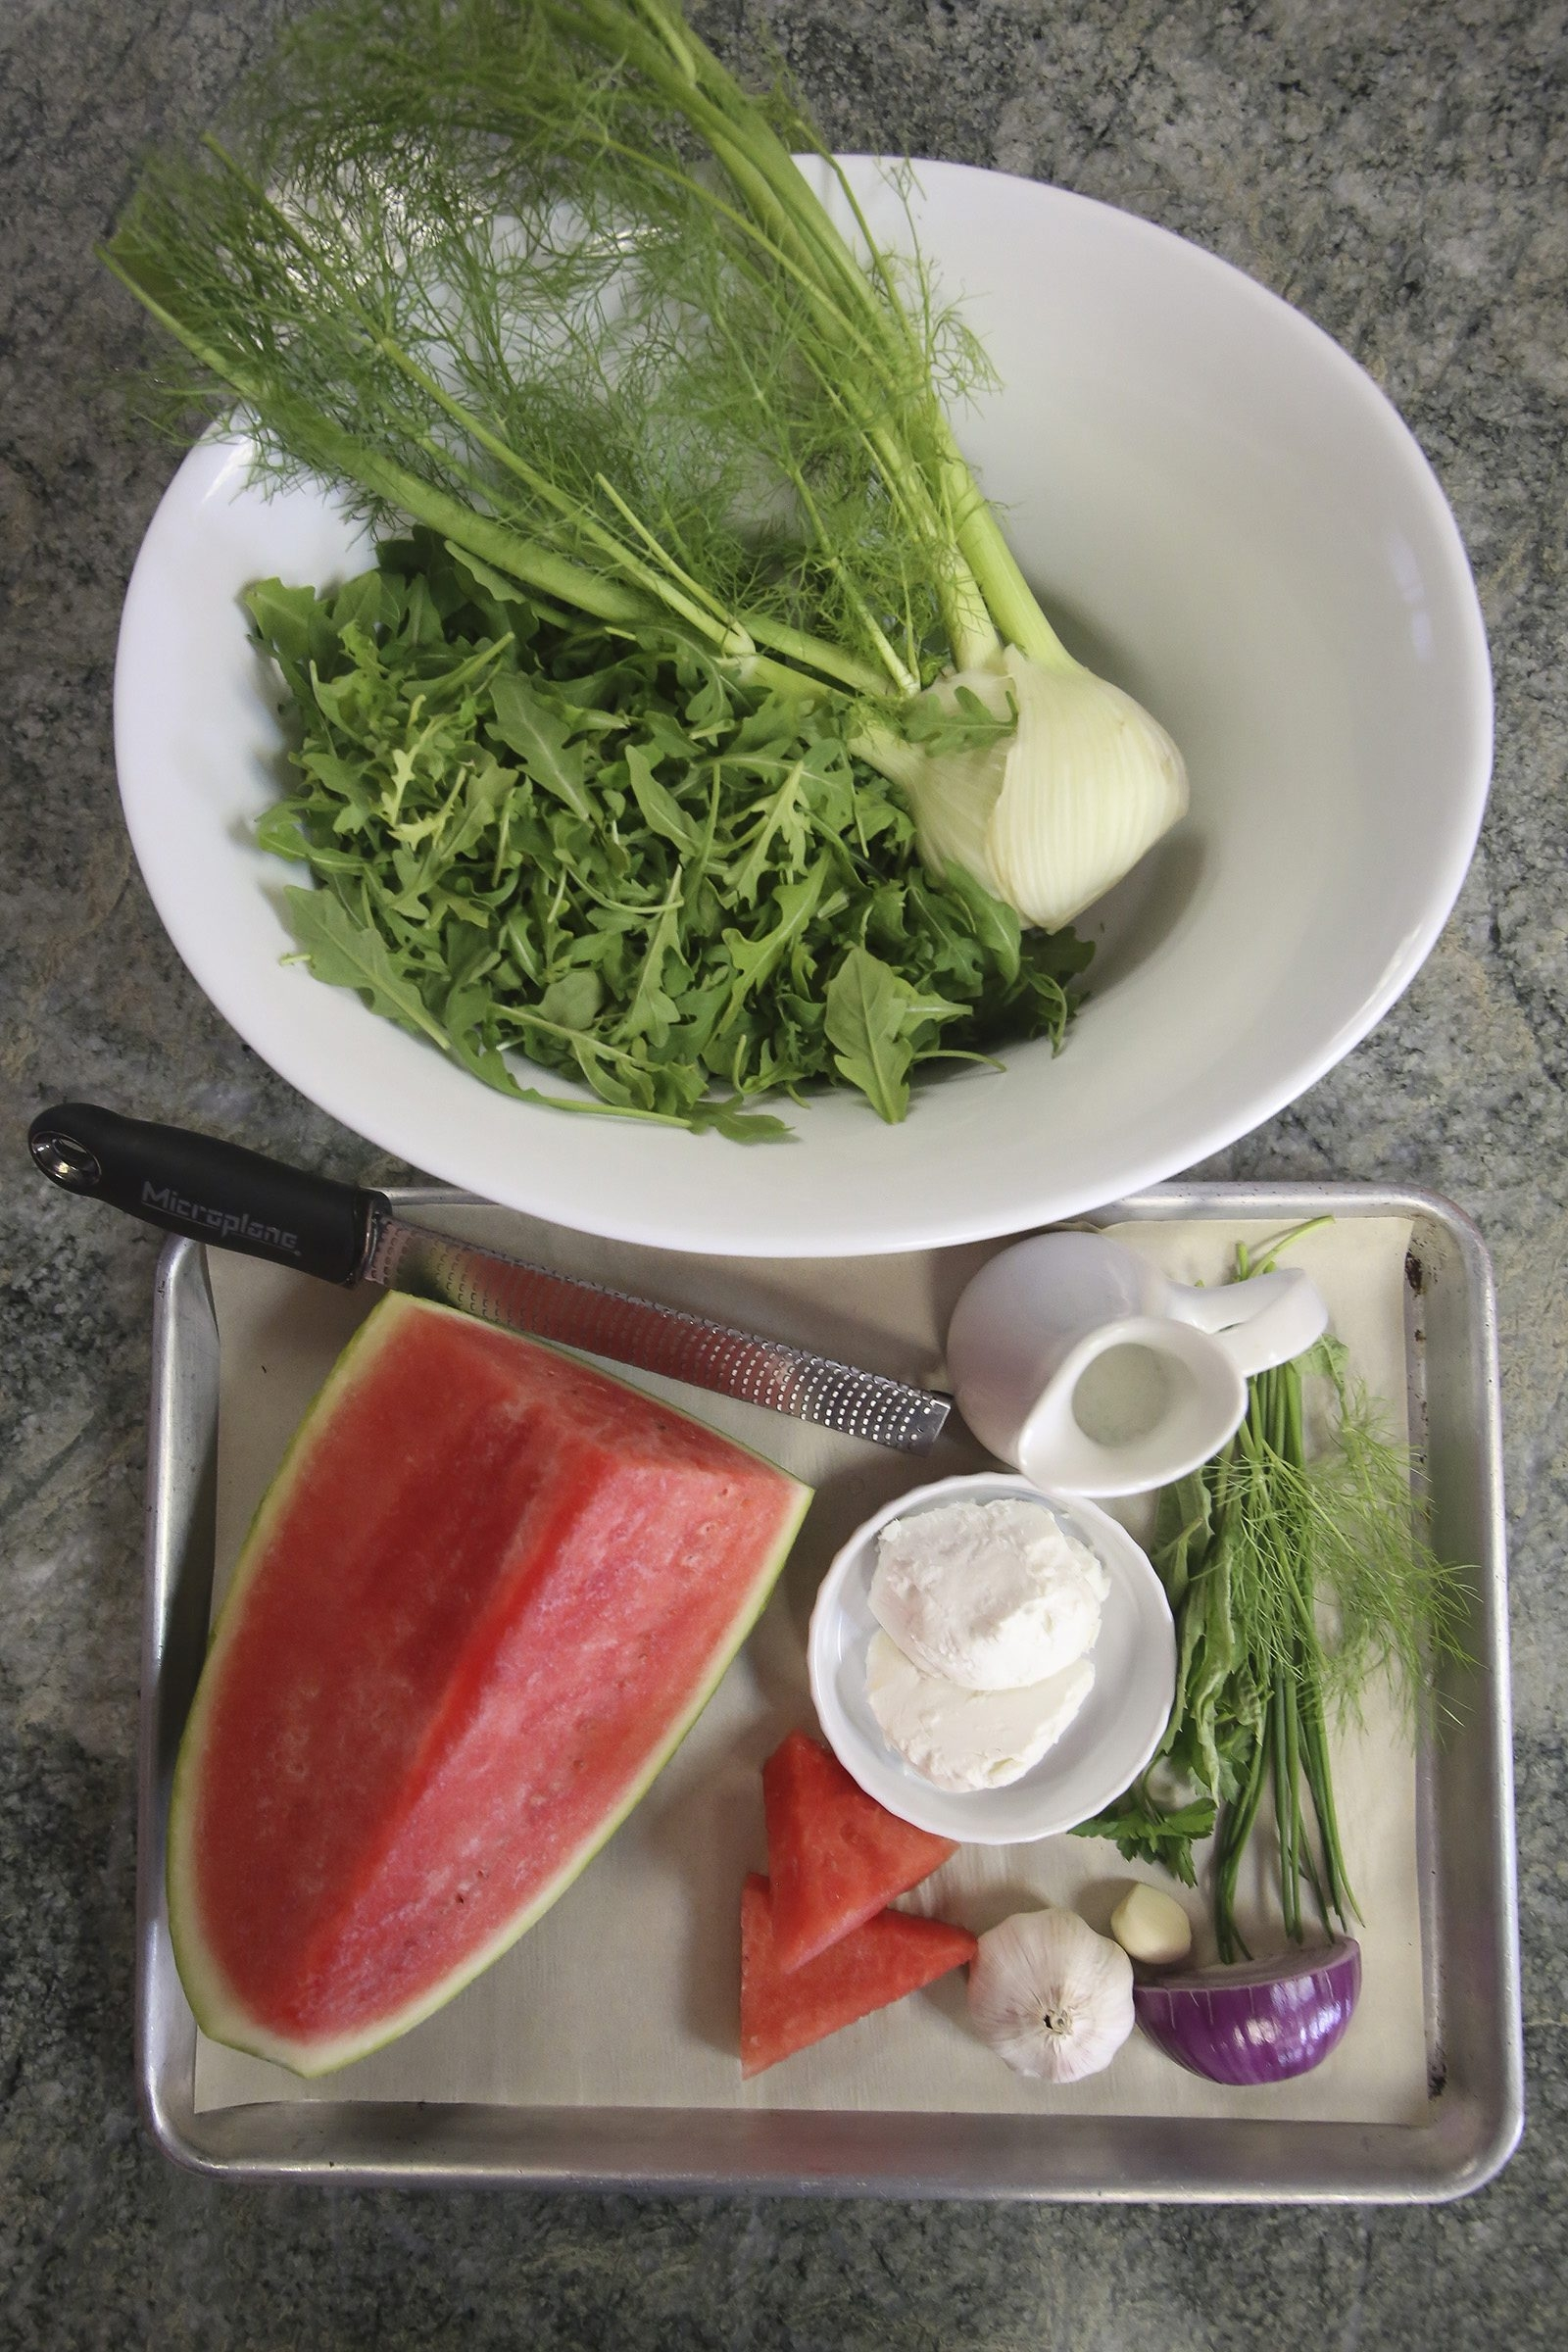 Ingredients for watermelon, fennel and arugula salad by Lenore Pinello of In The Kitchen in Tequesta Friday, May 9, 2014. (Bruce R. Bennett / The Palm Beach Post)